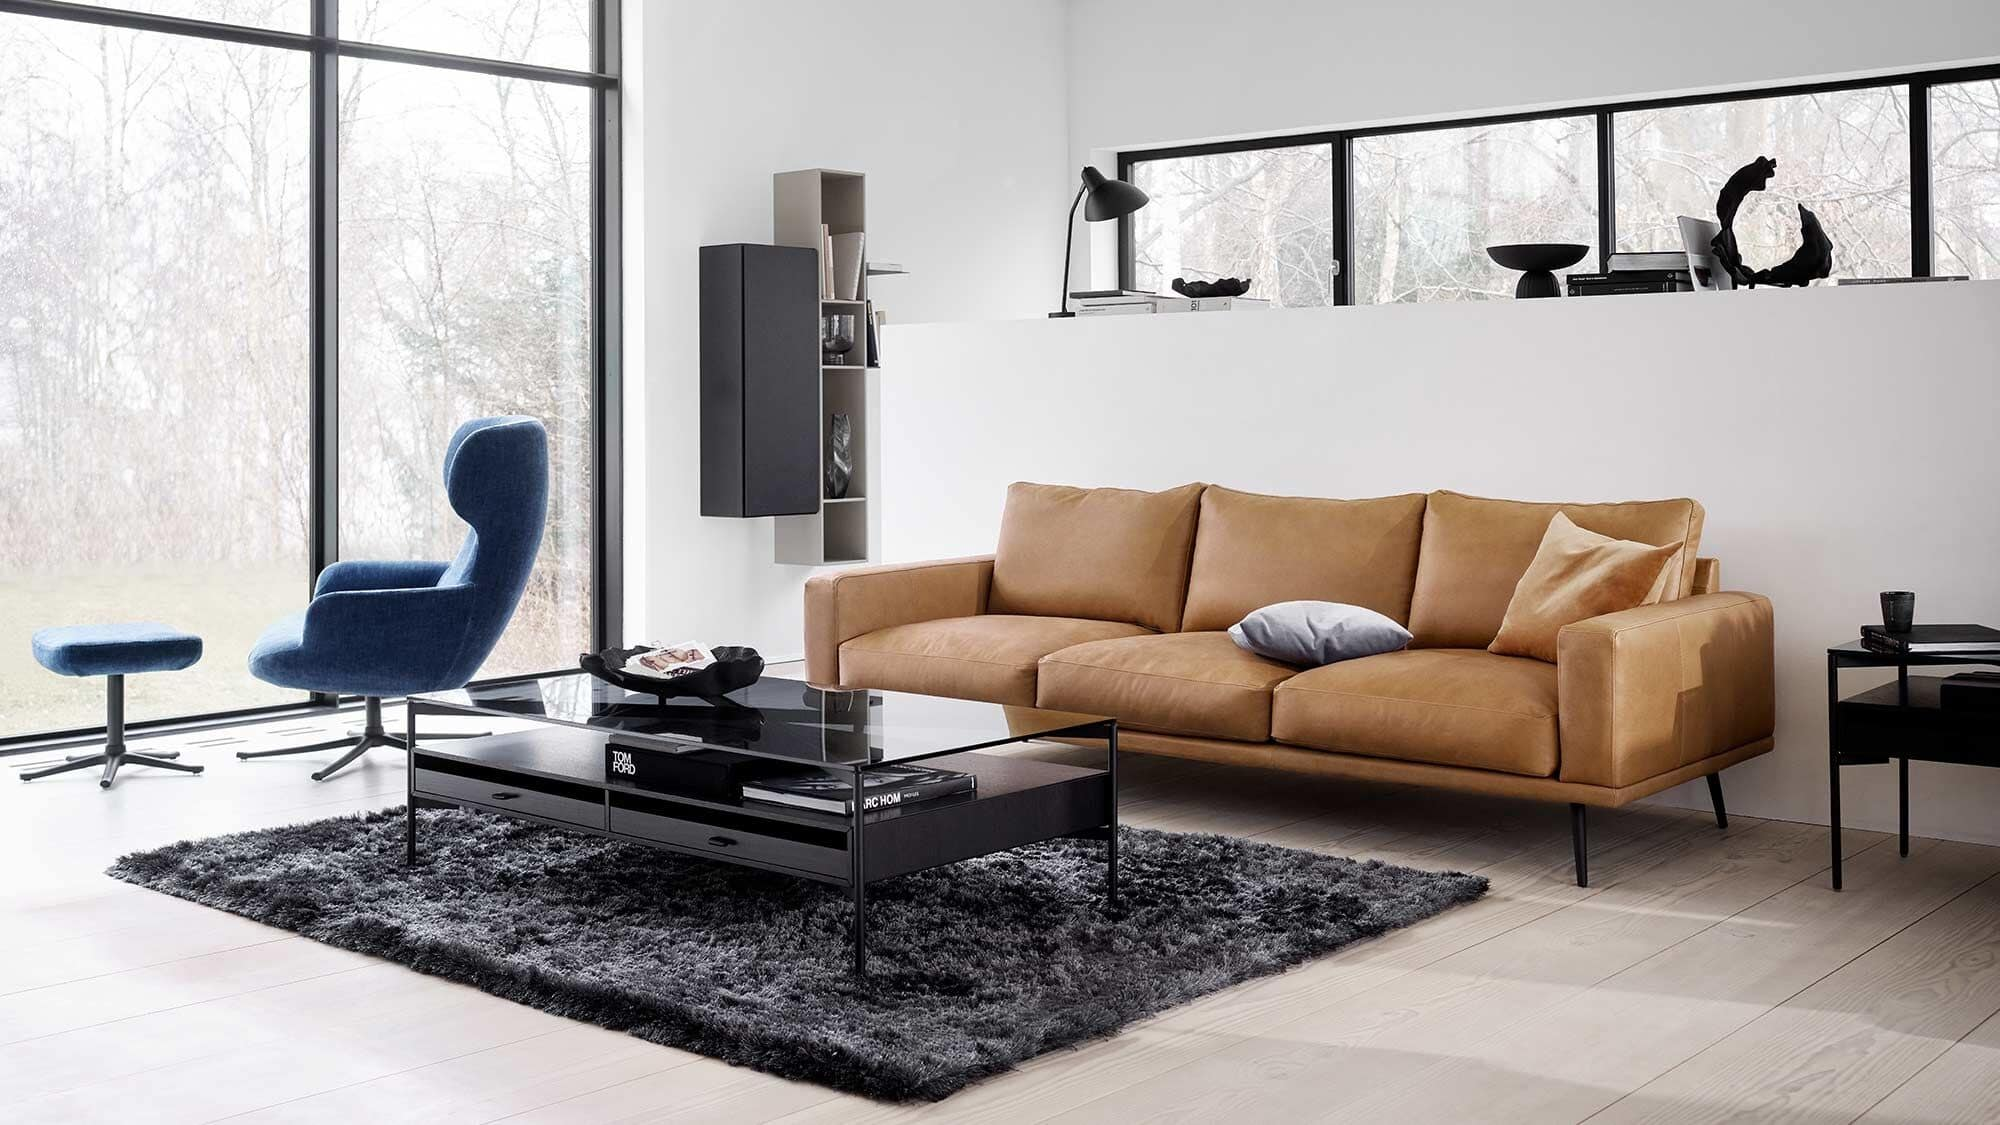 boconcet black rectangle coffee table in living room with tan leather sofa